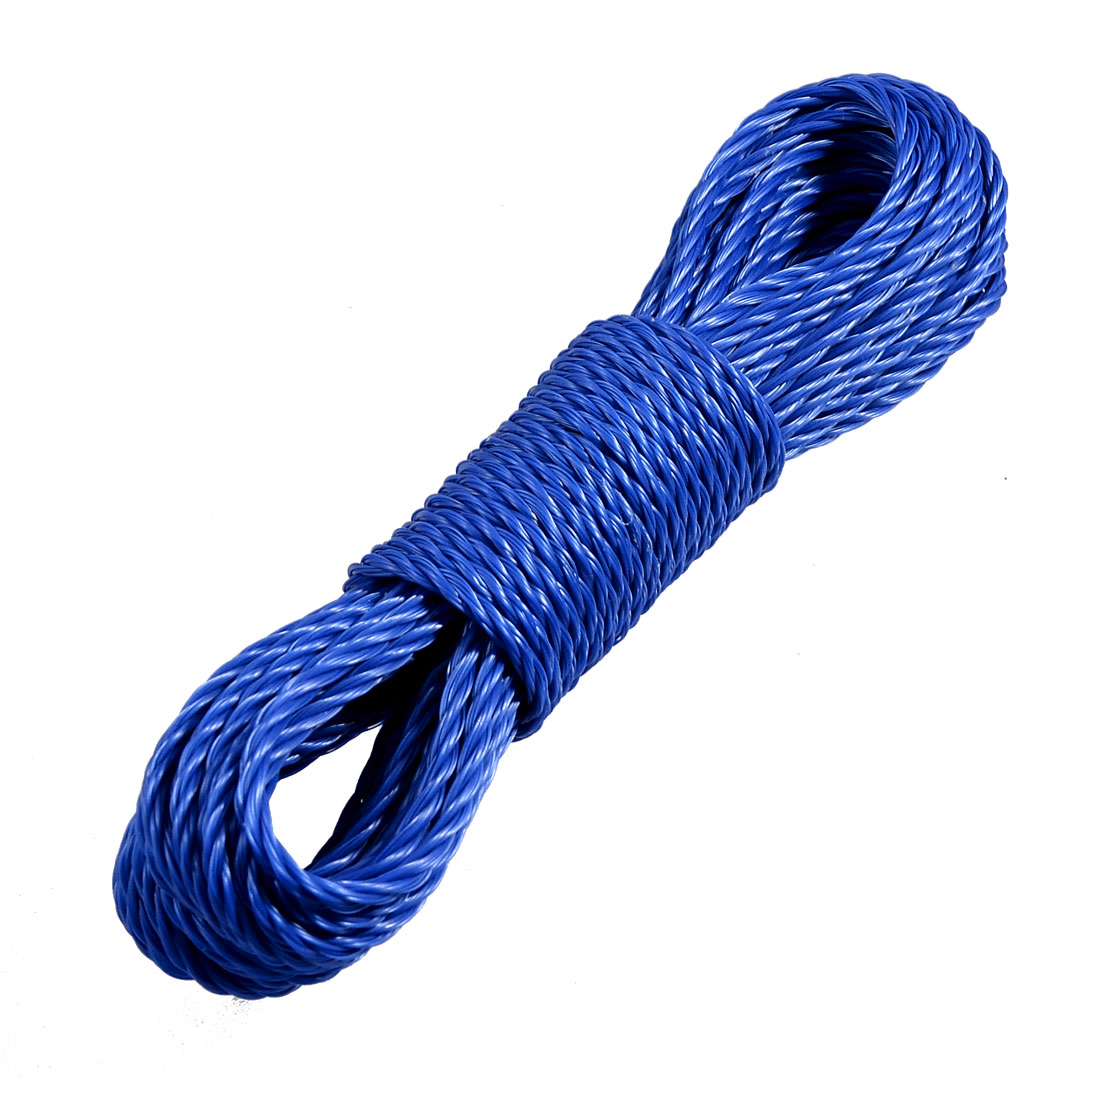 Home Outdoor Dark Blue Twisted Nylon Clothes Rope String Line 9.4M